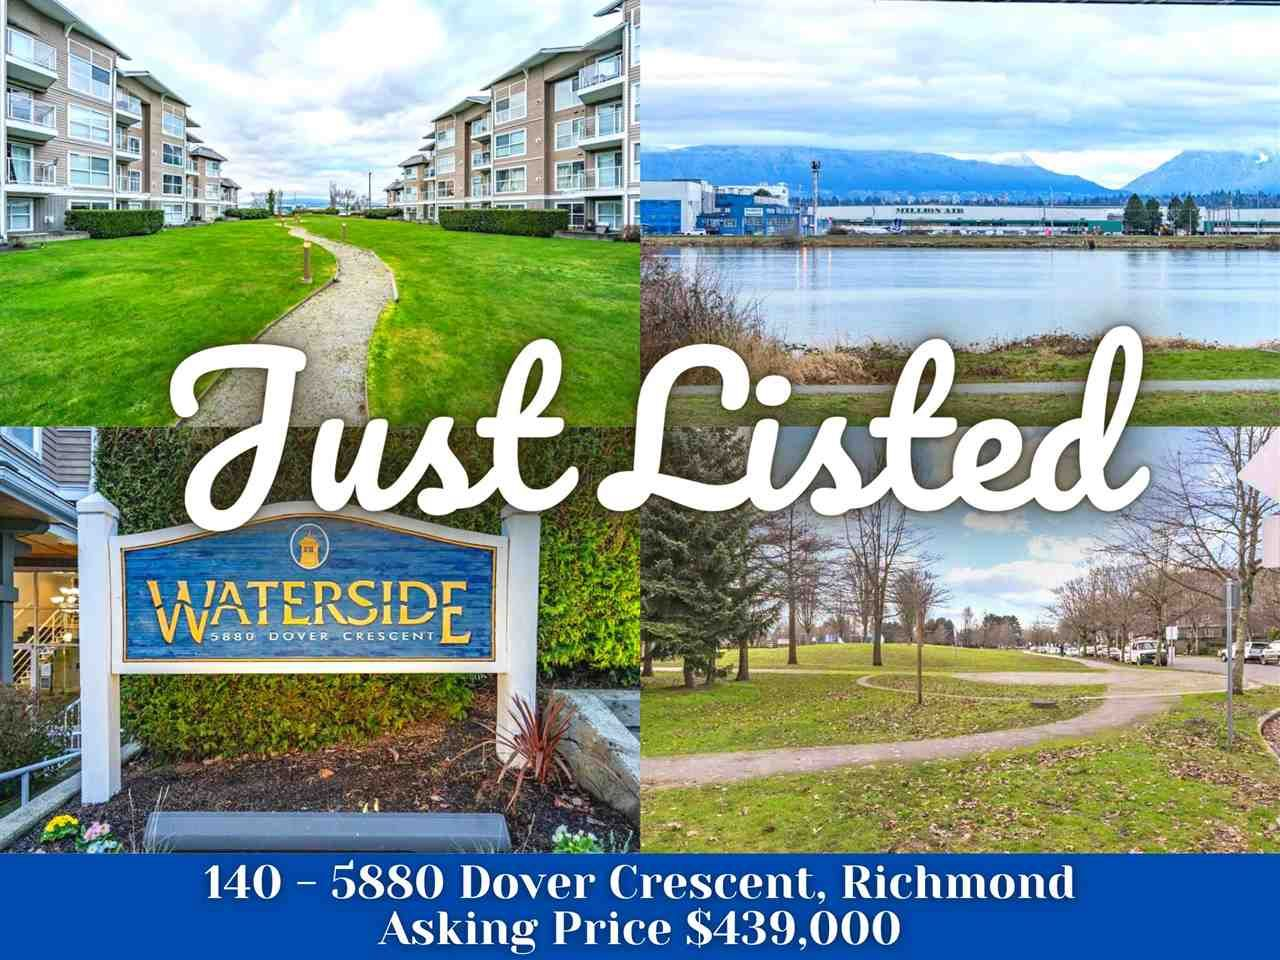 "Main Photo: 140 5880 DOVER Crescent in Richmond: Riverdale RI Condo for sale in ""WATERSIDE"" : MLS®# R2575673"